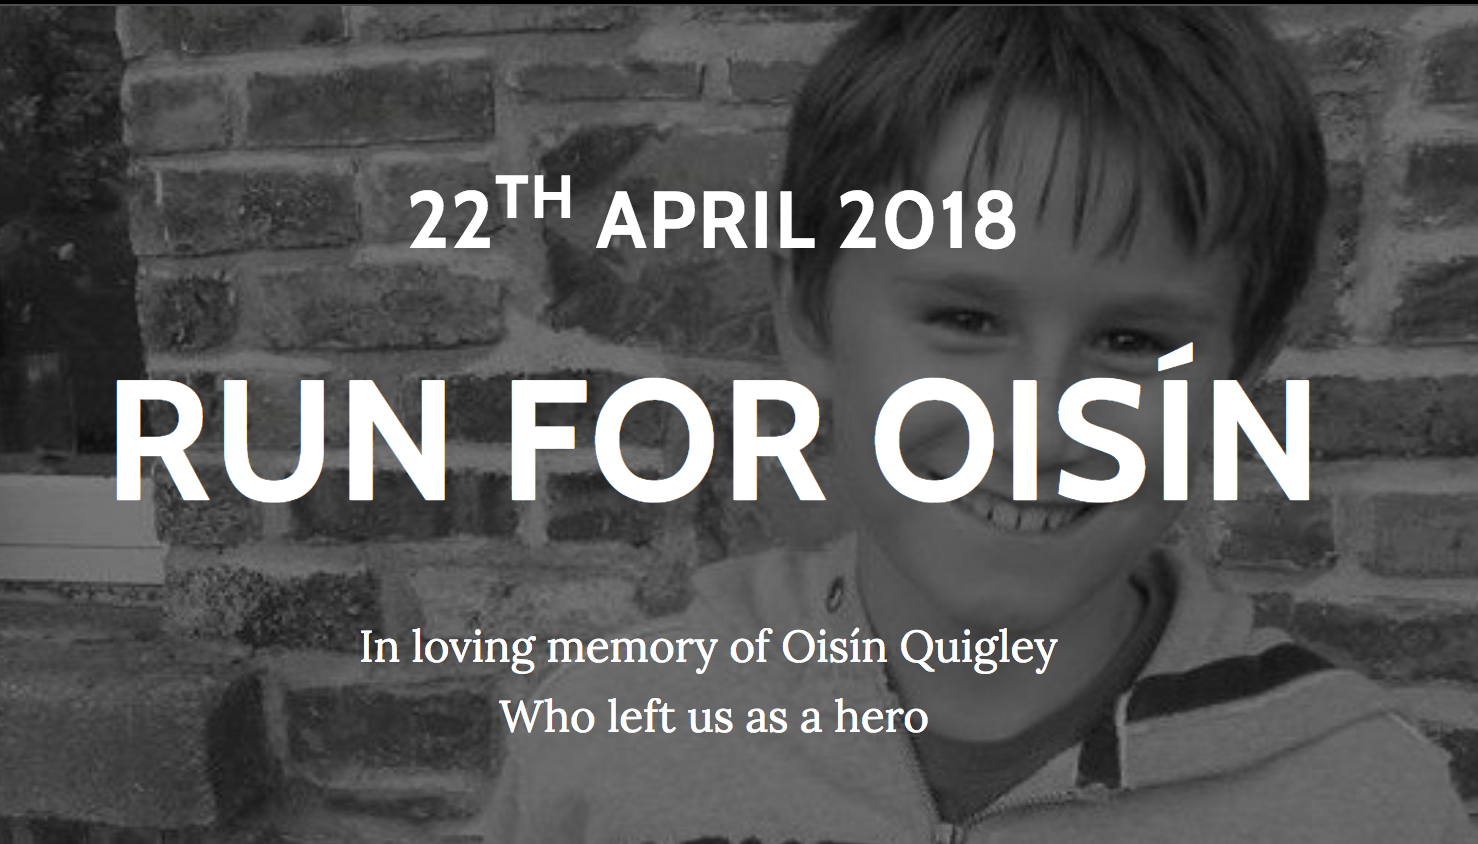 Run for Oisin